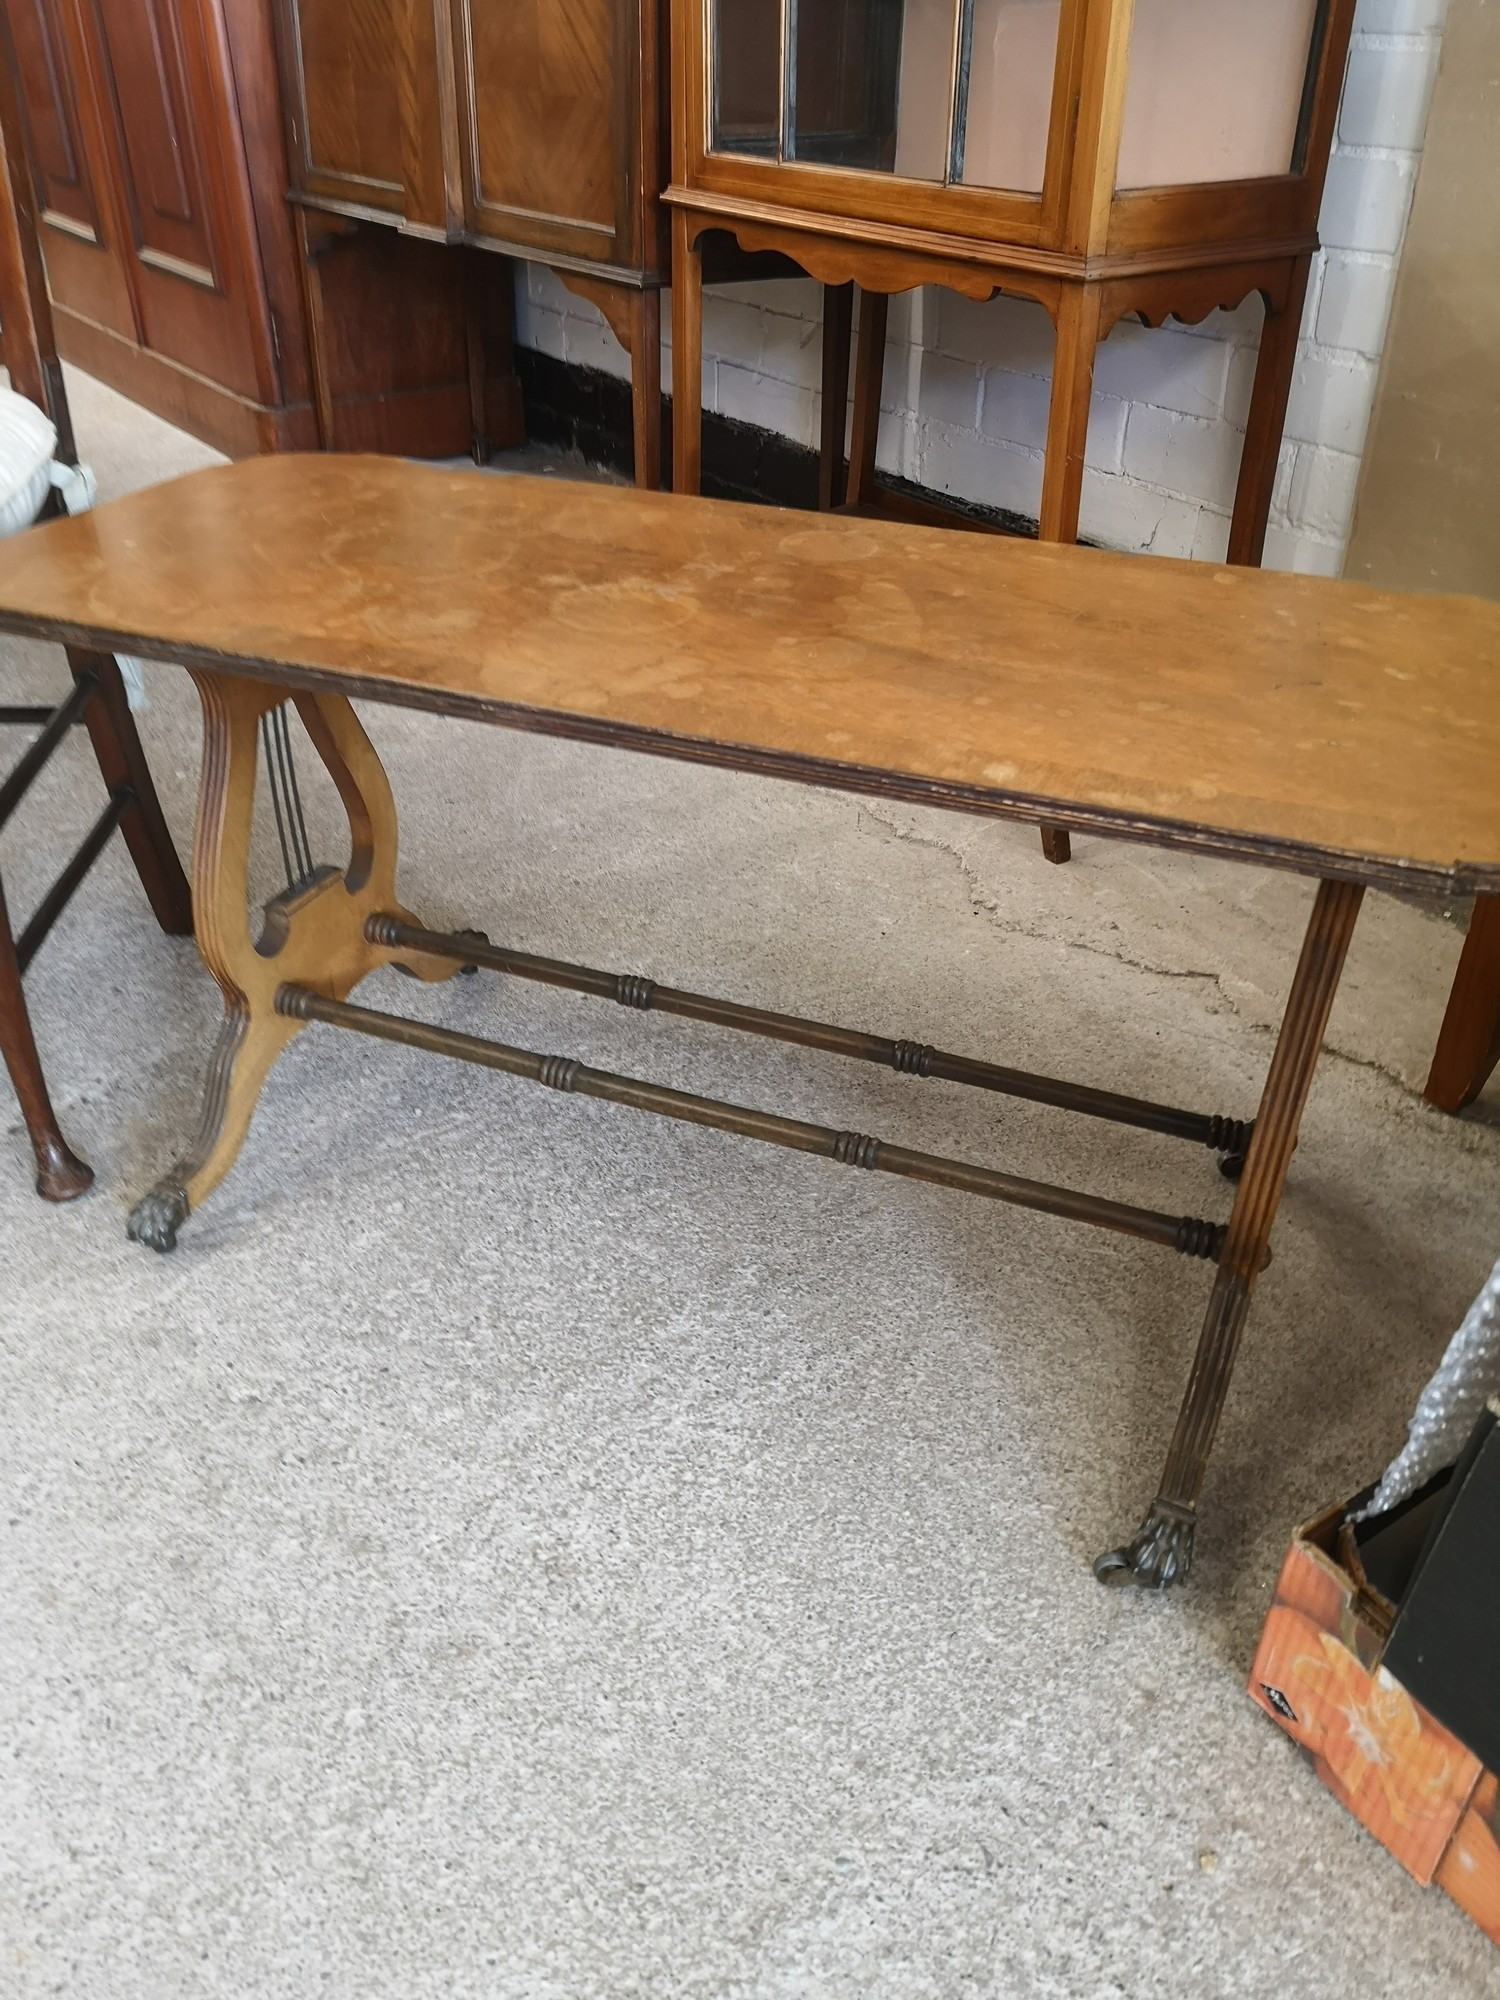 Vintage liar shaped end table with brass feet together with vintage chair. - Image 2 of 3